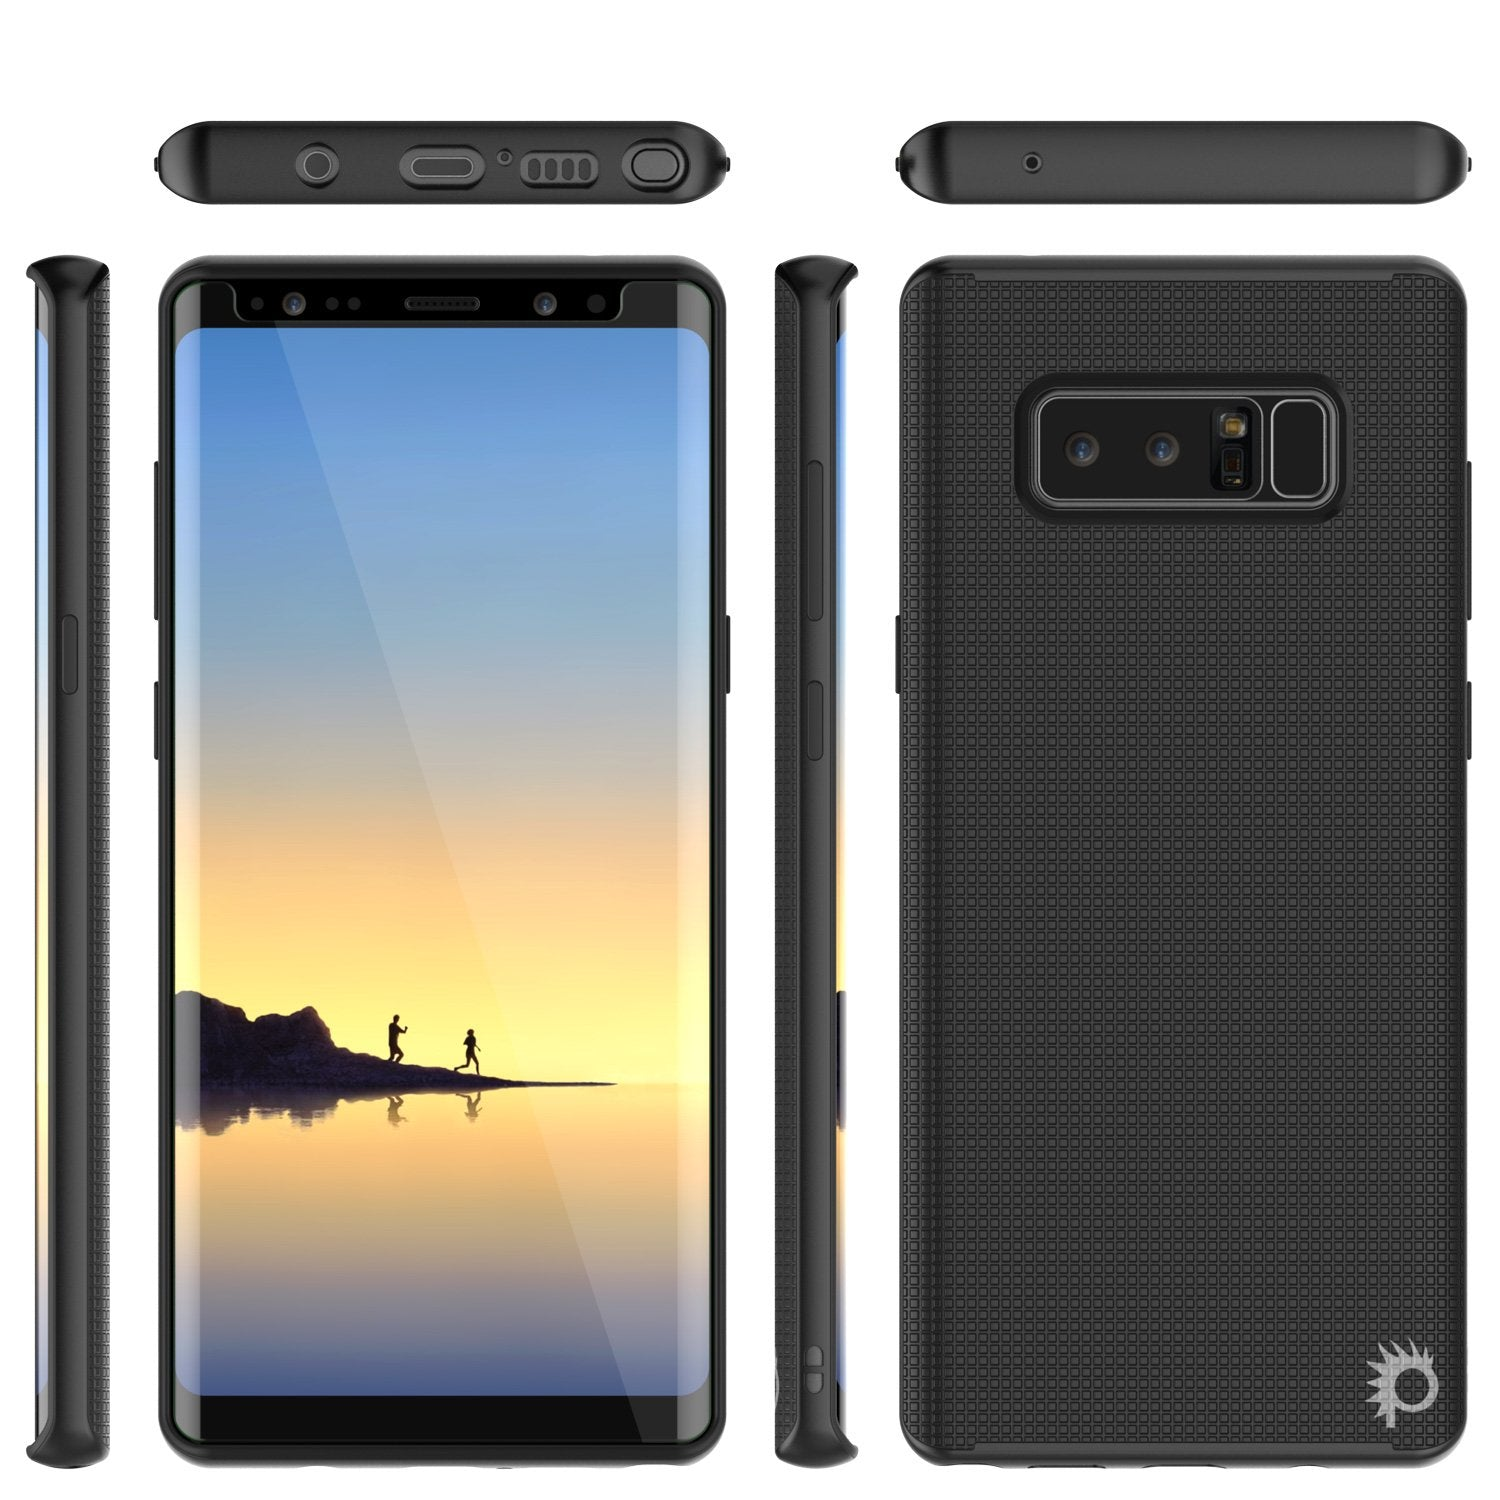 Galaxy Note 8 Case, PunkCase [Stealth Series] Hybrid 3-Piece Shockproof Dual Layer Cover [Non-Slip] [Soft TPU + PC Bumper] with PUNKSHIELD Screen Protector for Samsung Note 8 [Black] - PunkCase NZ